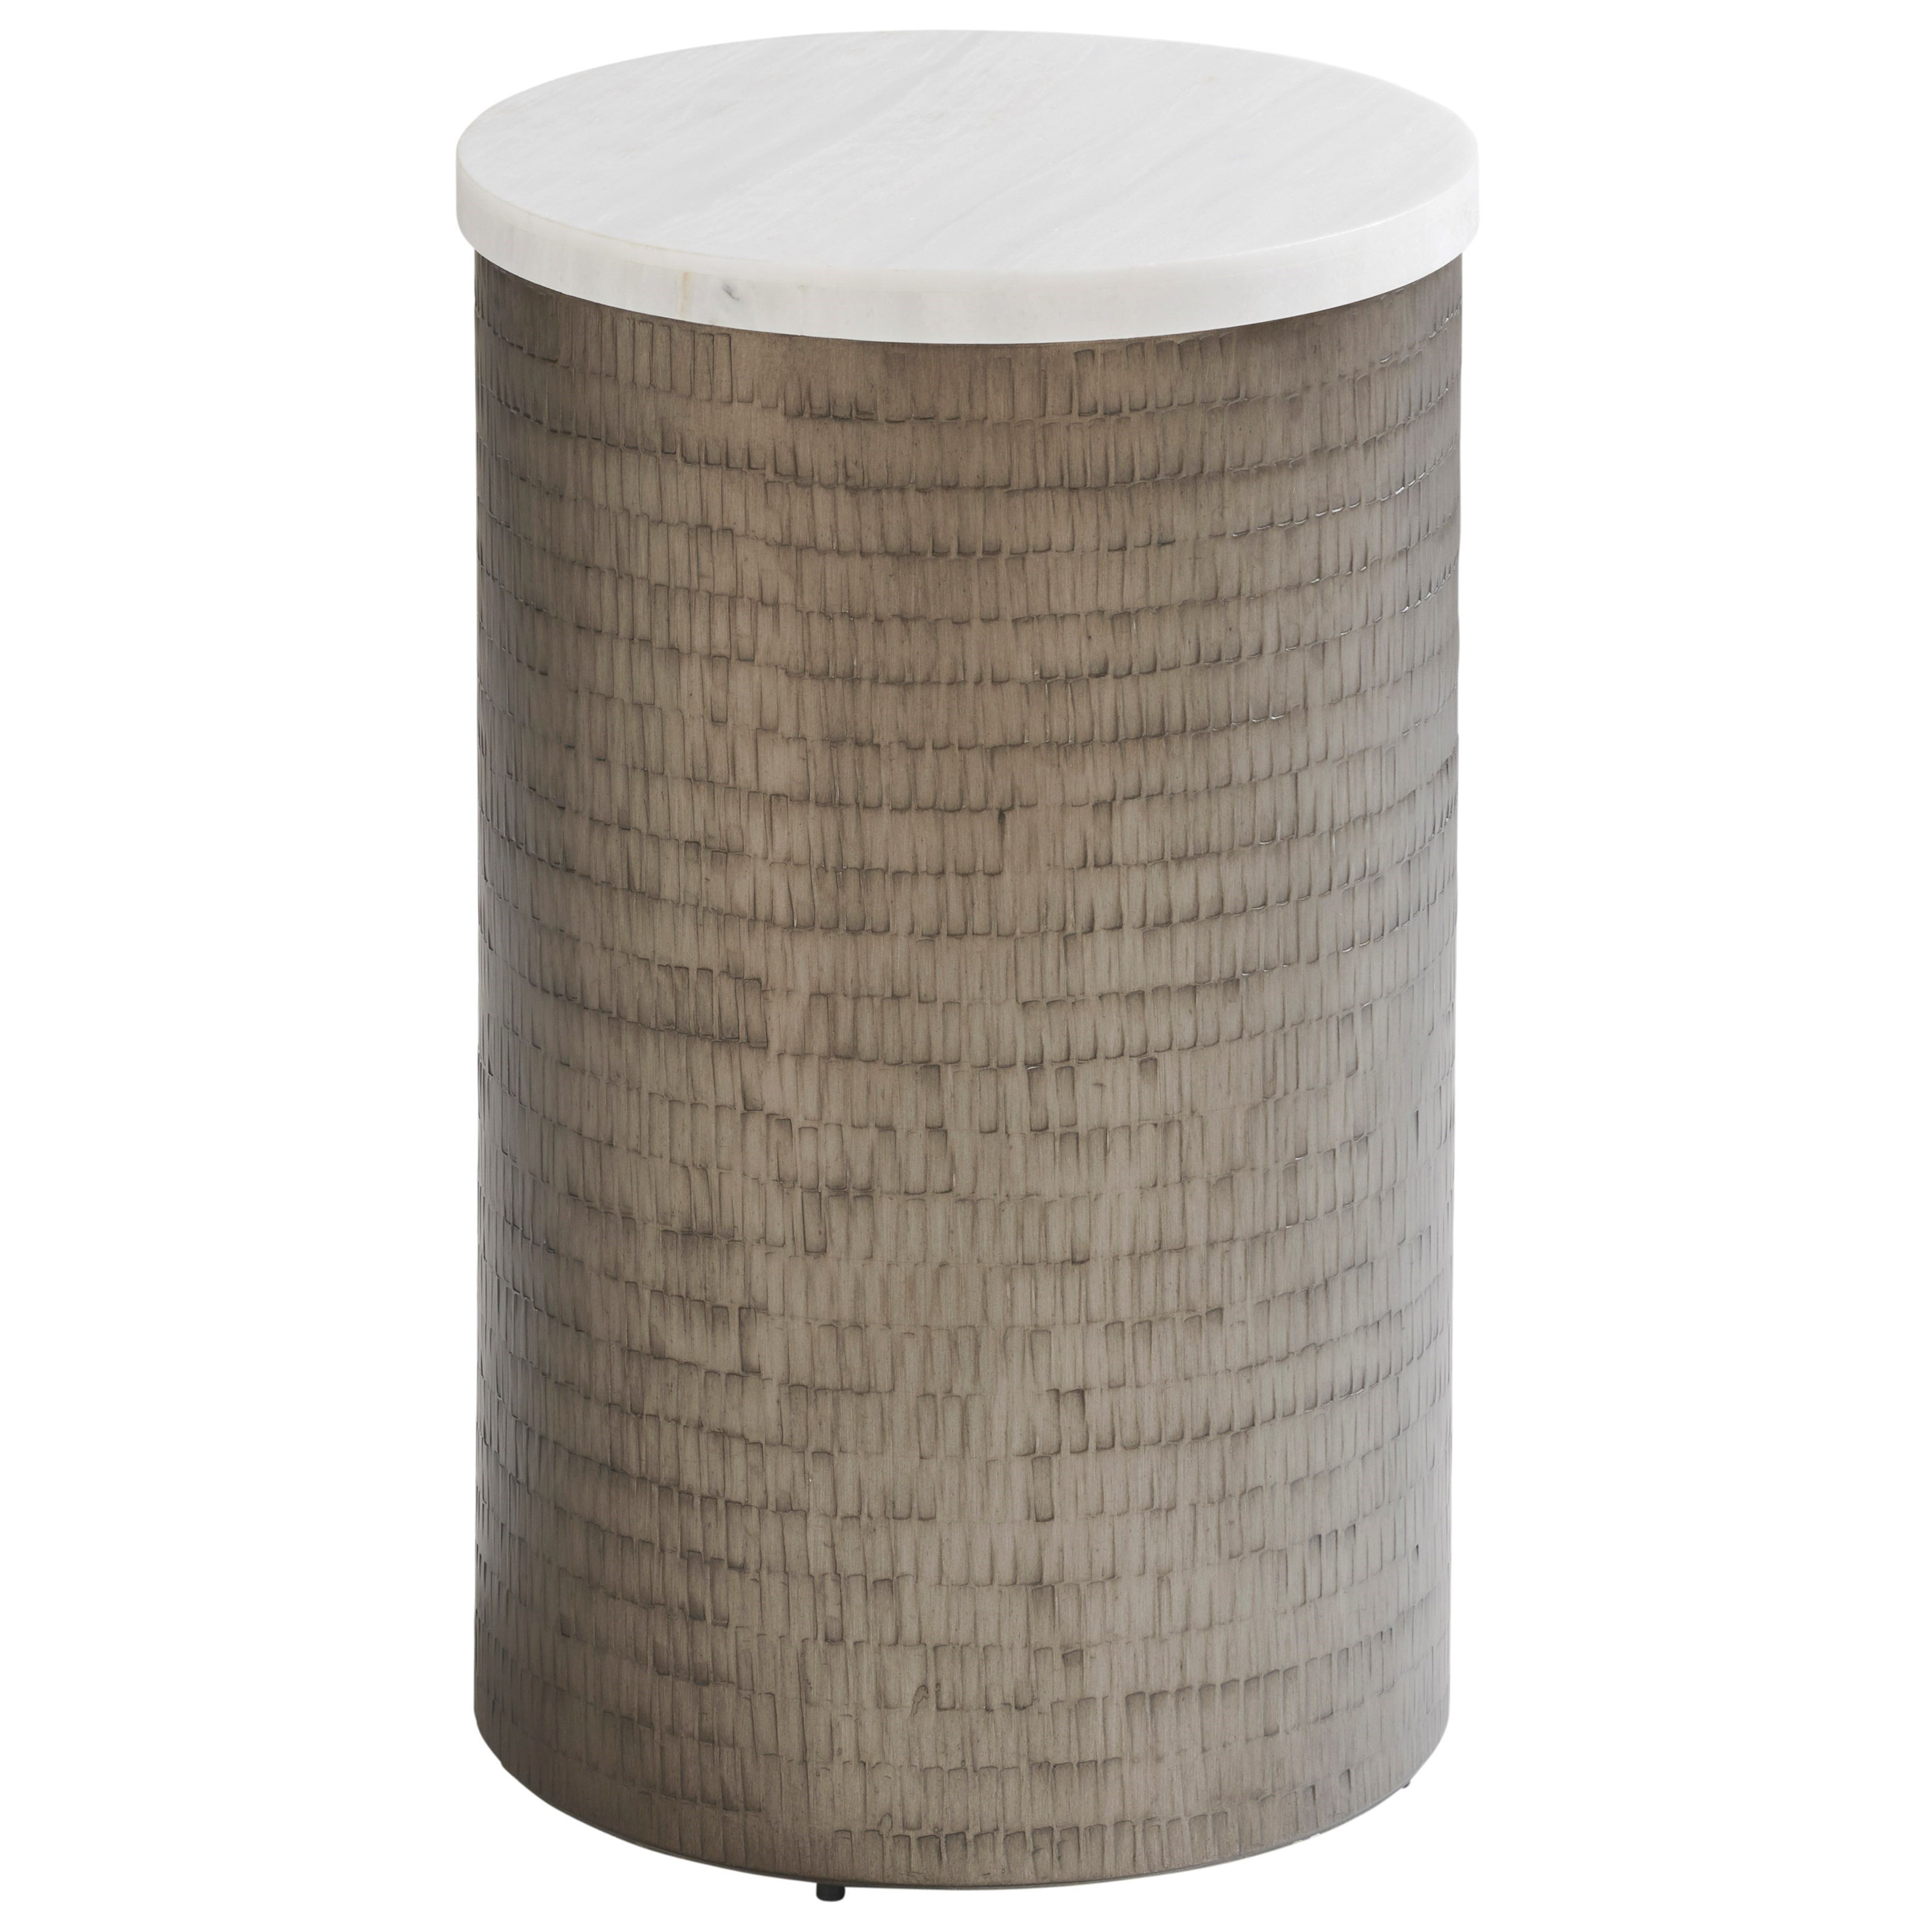 Ocean Breeze Turnberry Round Chairside Table by Tommy Bahama Home at Baer's Furniture